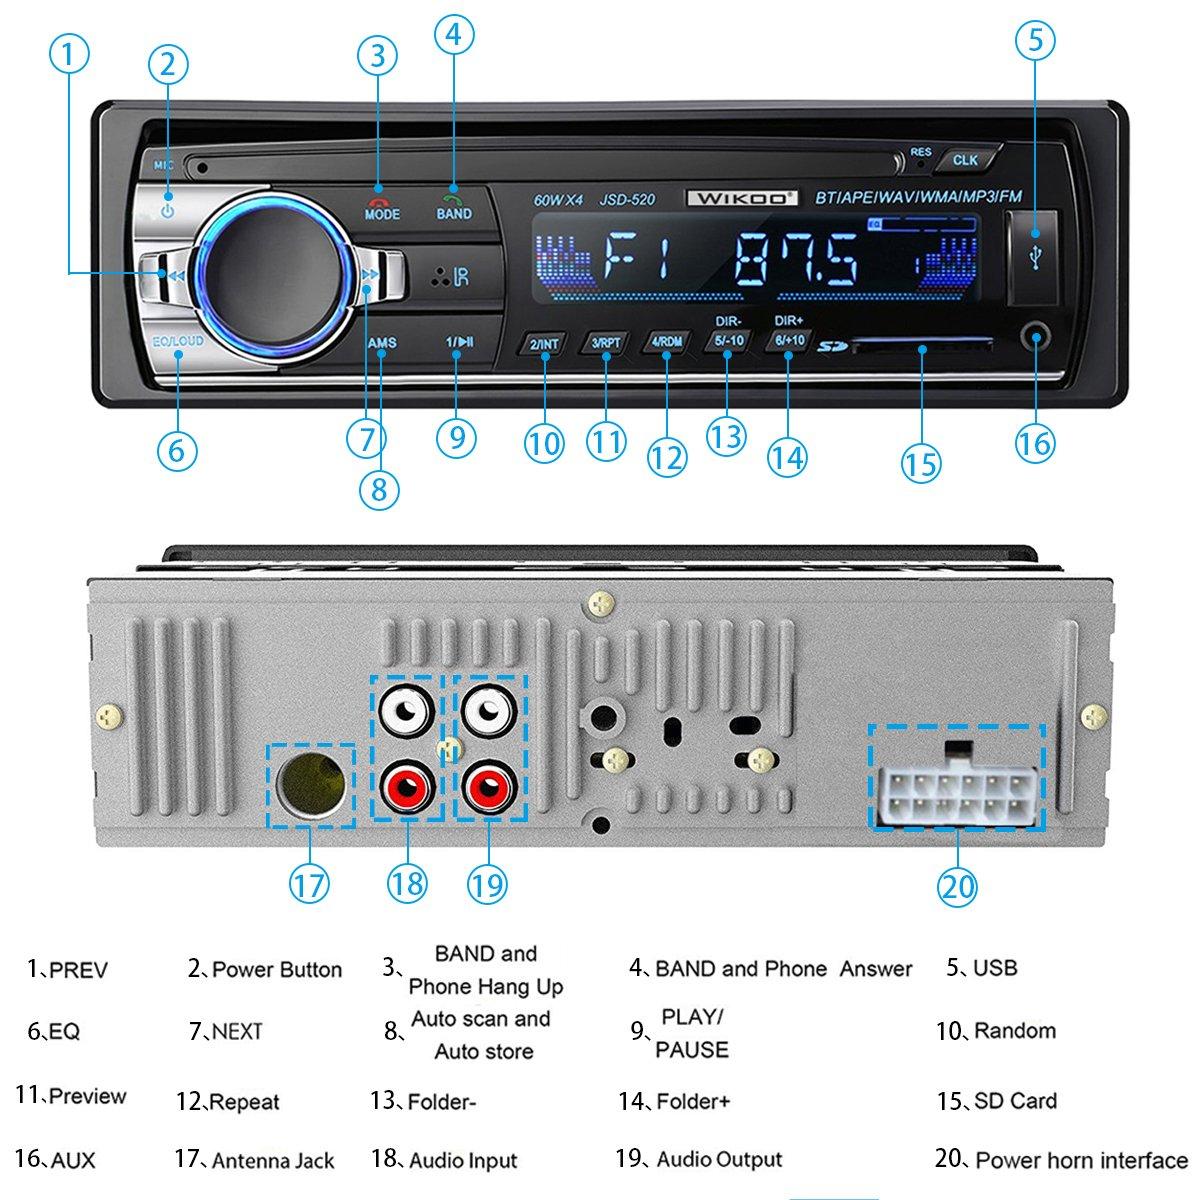 Digital Car Stereo - Wikoo Single-Din Bluetooth Car Stereo In Dash with Remote Control - Receivers USB/SD/Audio - MP3 Player/FM Radio, Supports Hands Free Calling by Wikoo (Image #4)